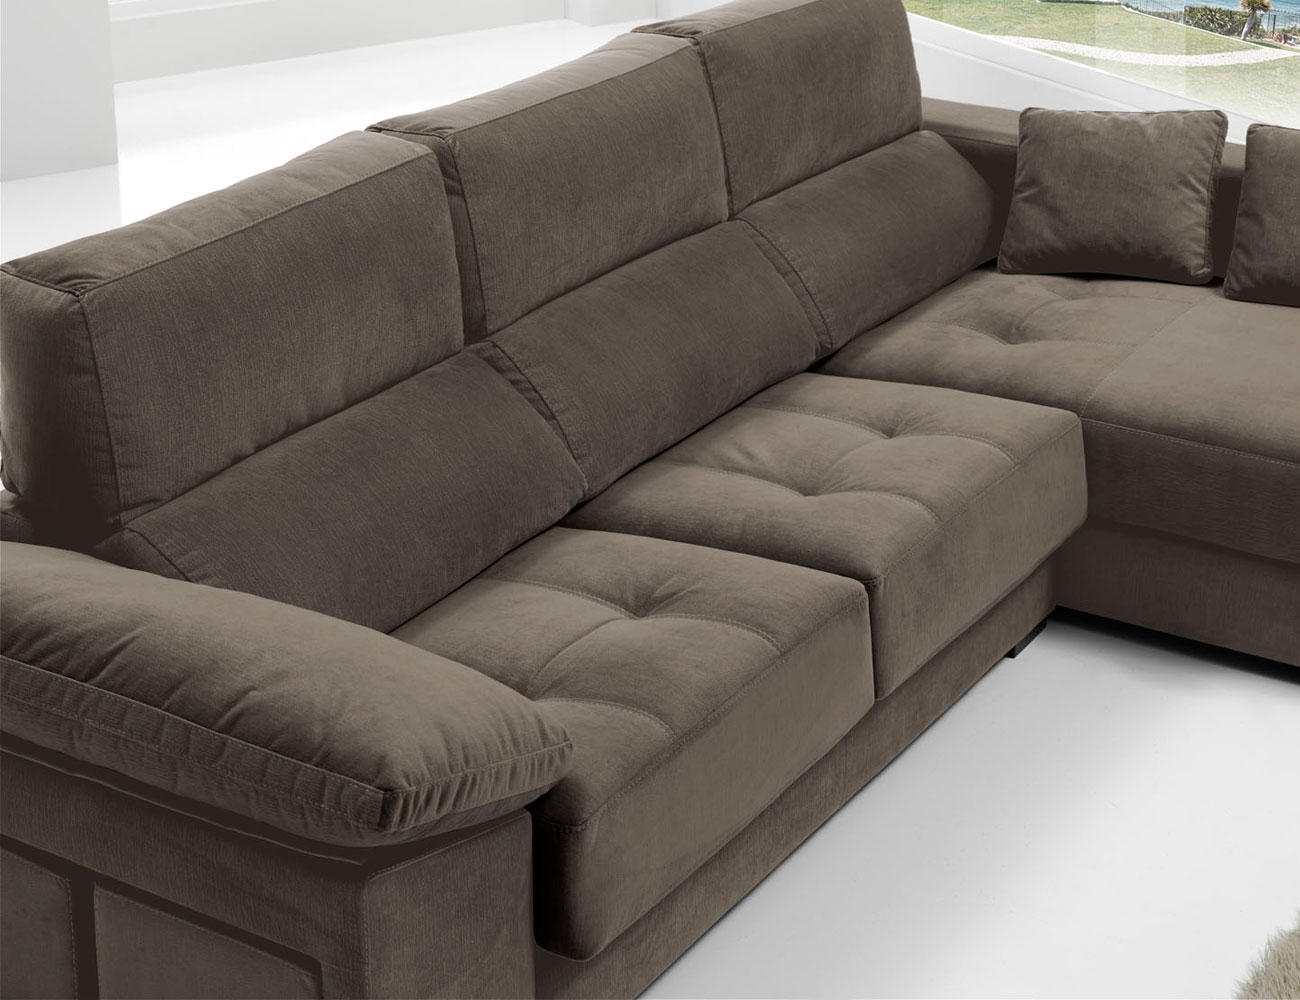 Sofa chaiselongue anti manchas bering pouf 24